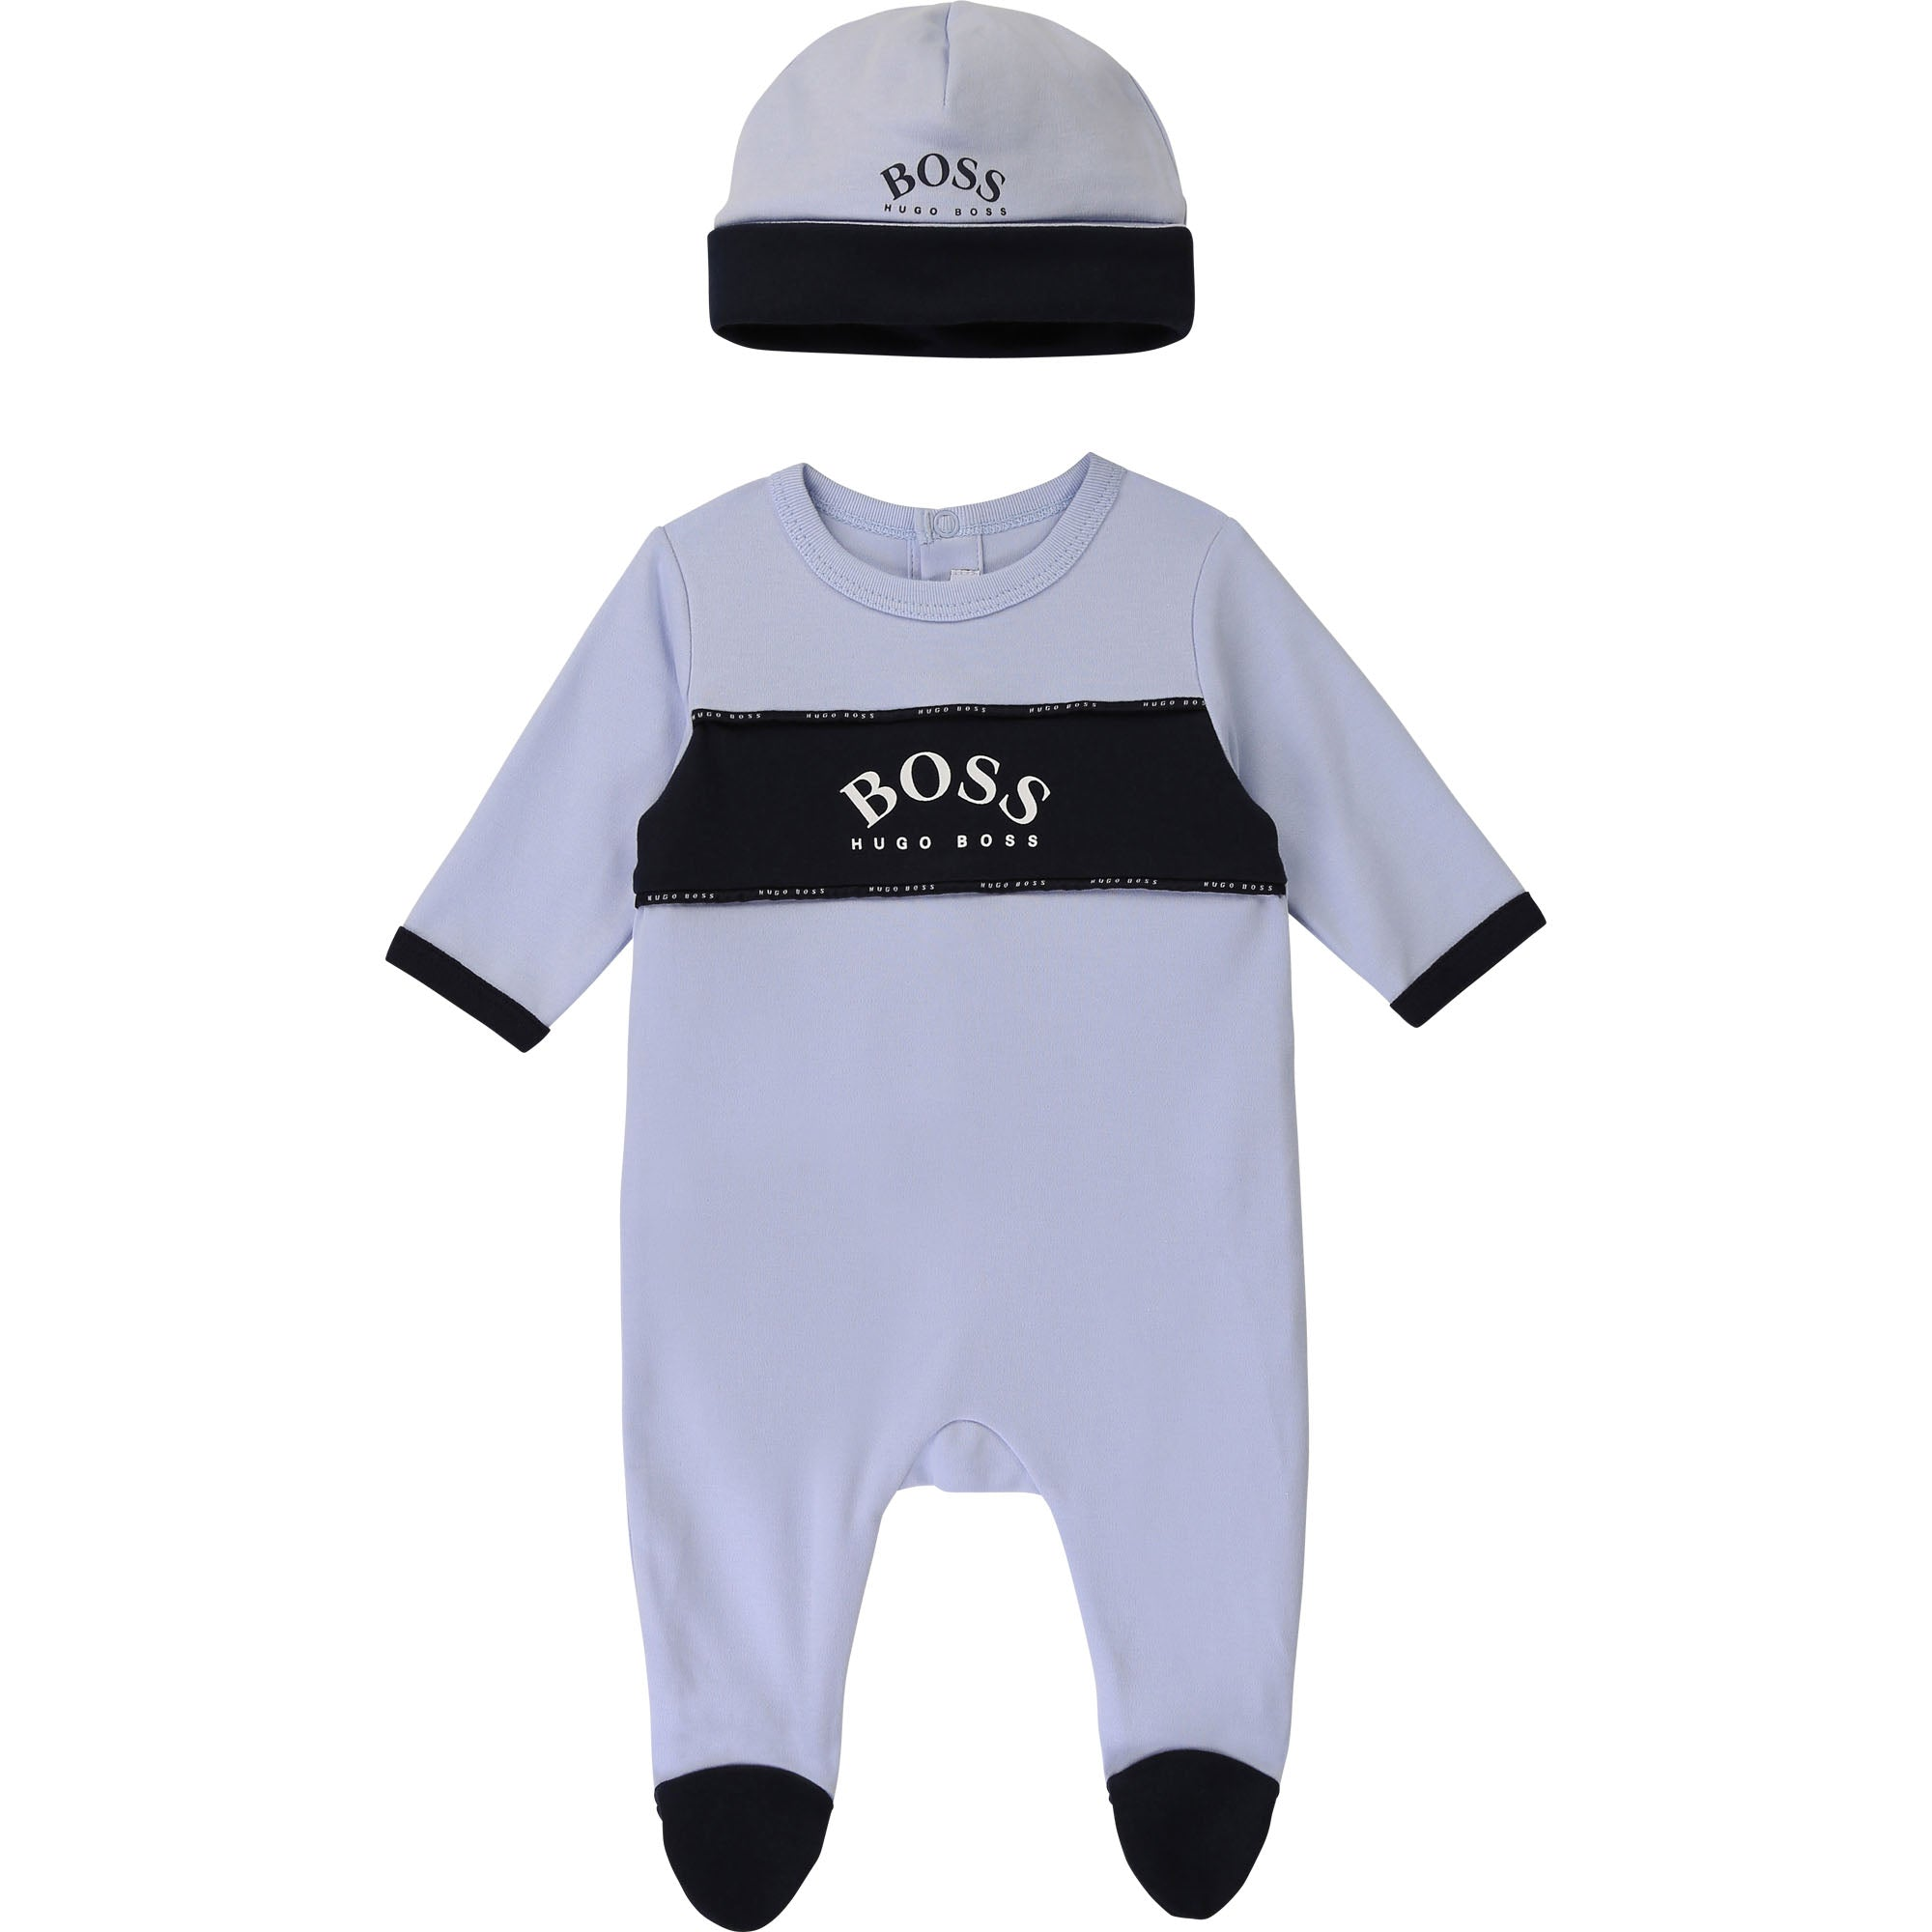 HUGO BOSS J98309 BABY BOY PYJAMAS + PULL ON HAT SET PALE BLUE